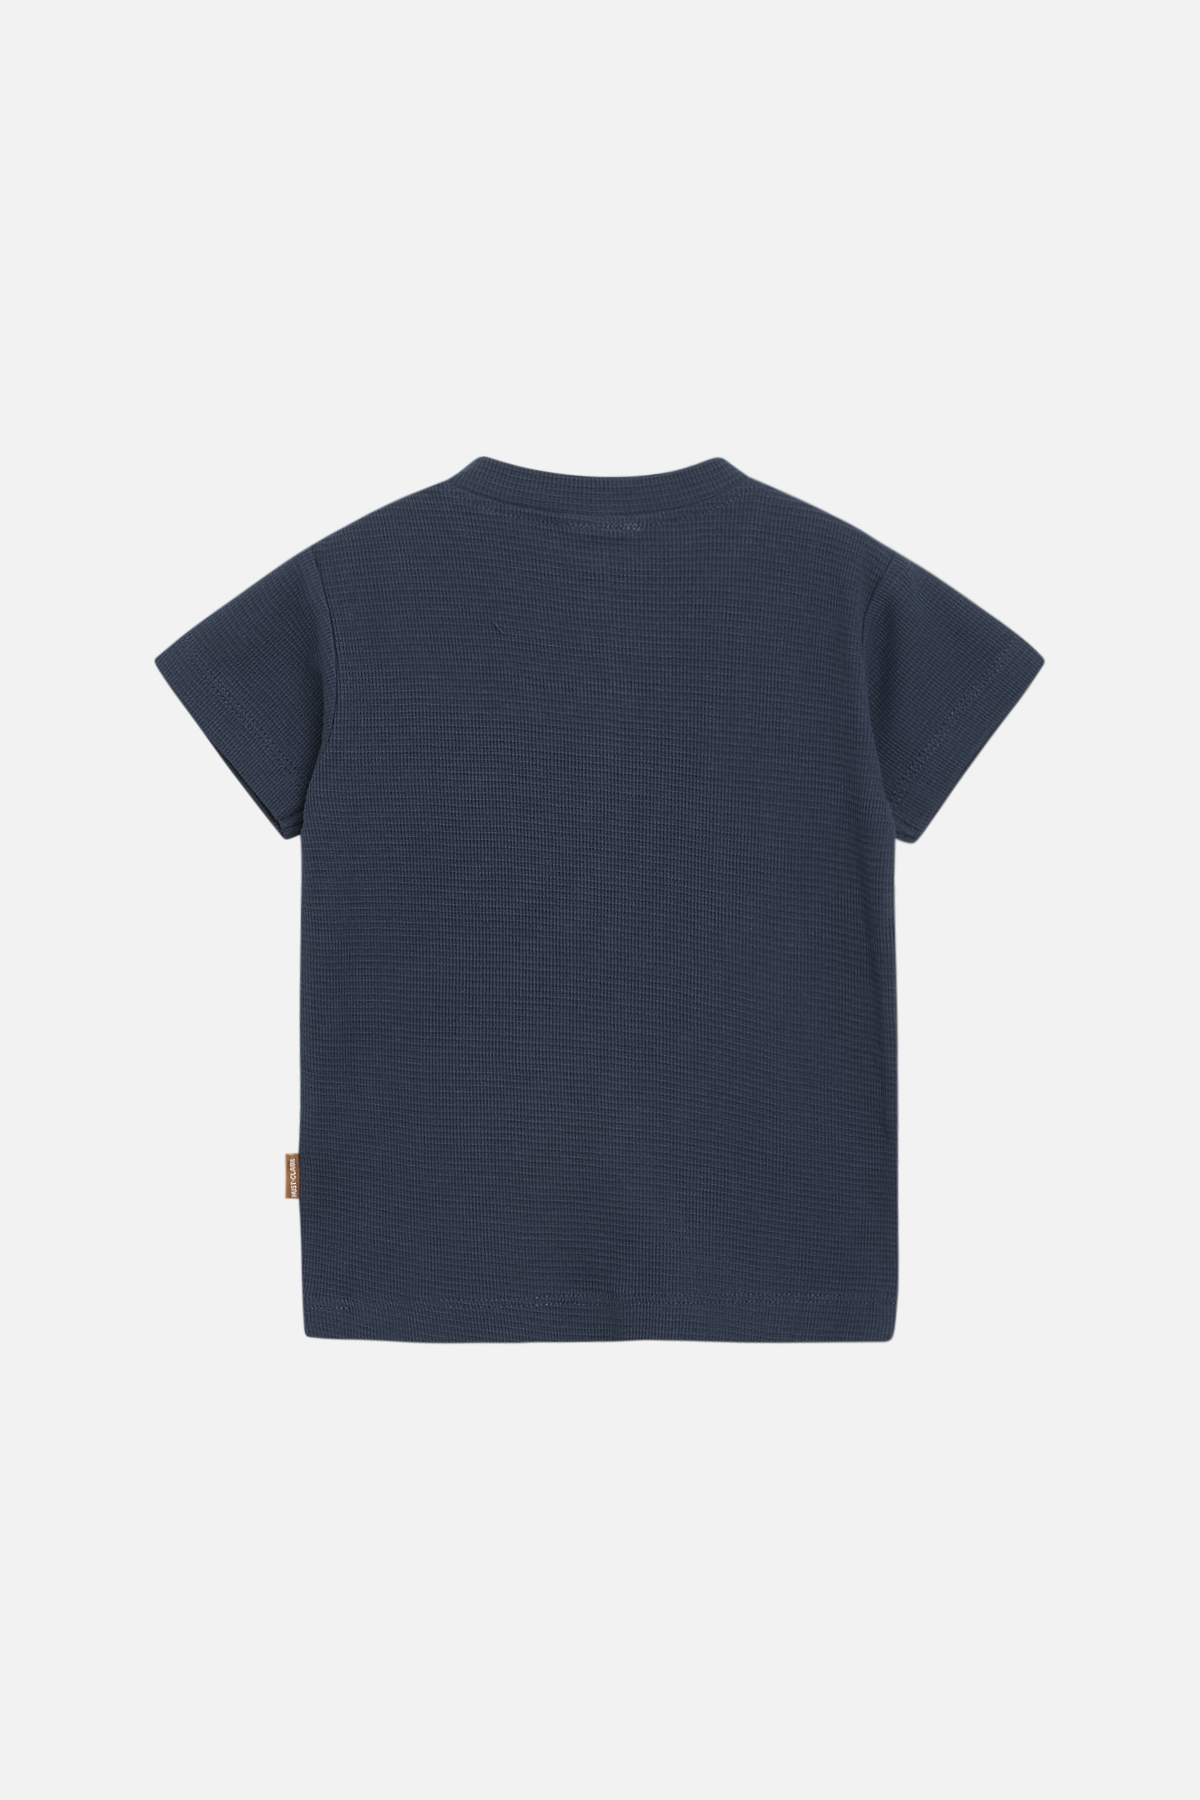 Hust and Claire Anders SS t-shirt, Blue moon, 116